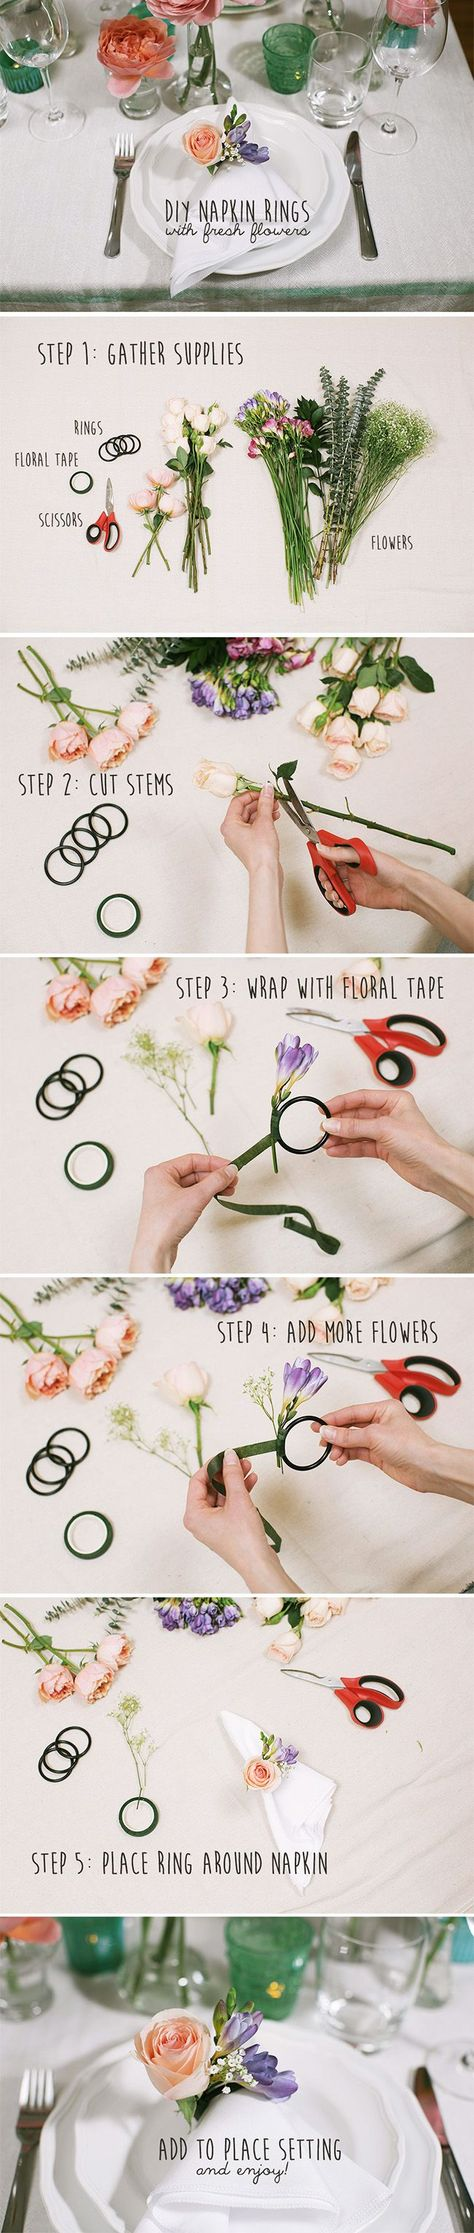 59 Decorations Ideas Napkin Rings Diy Marble Party Floral Birthday Party